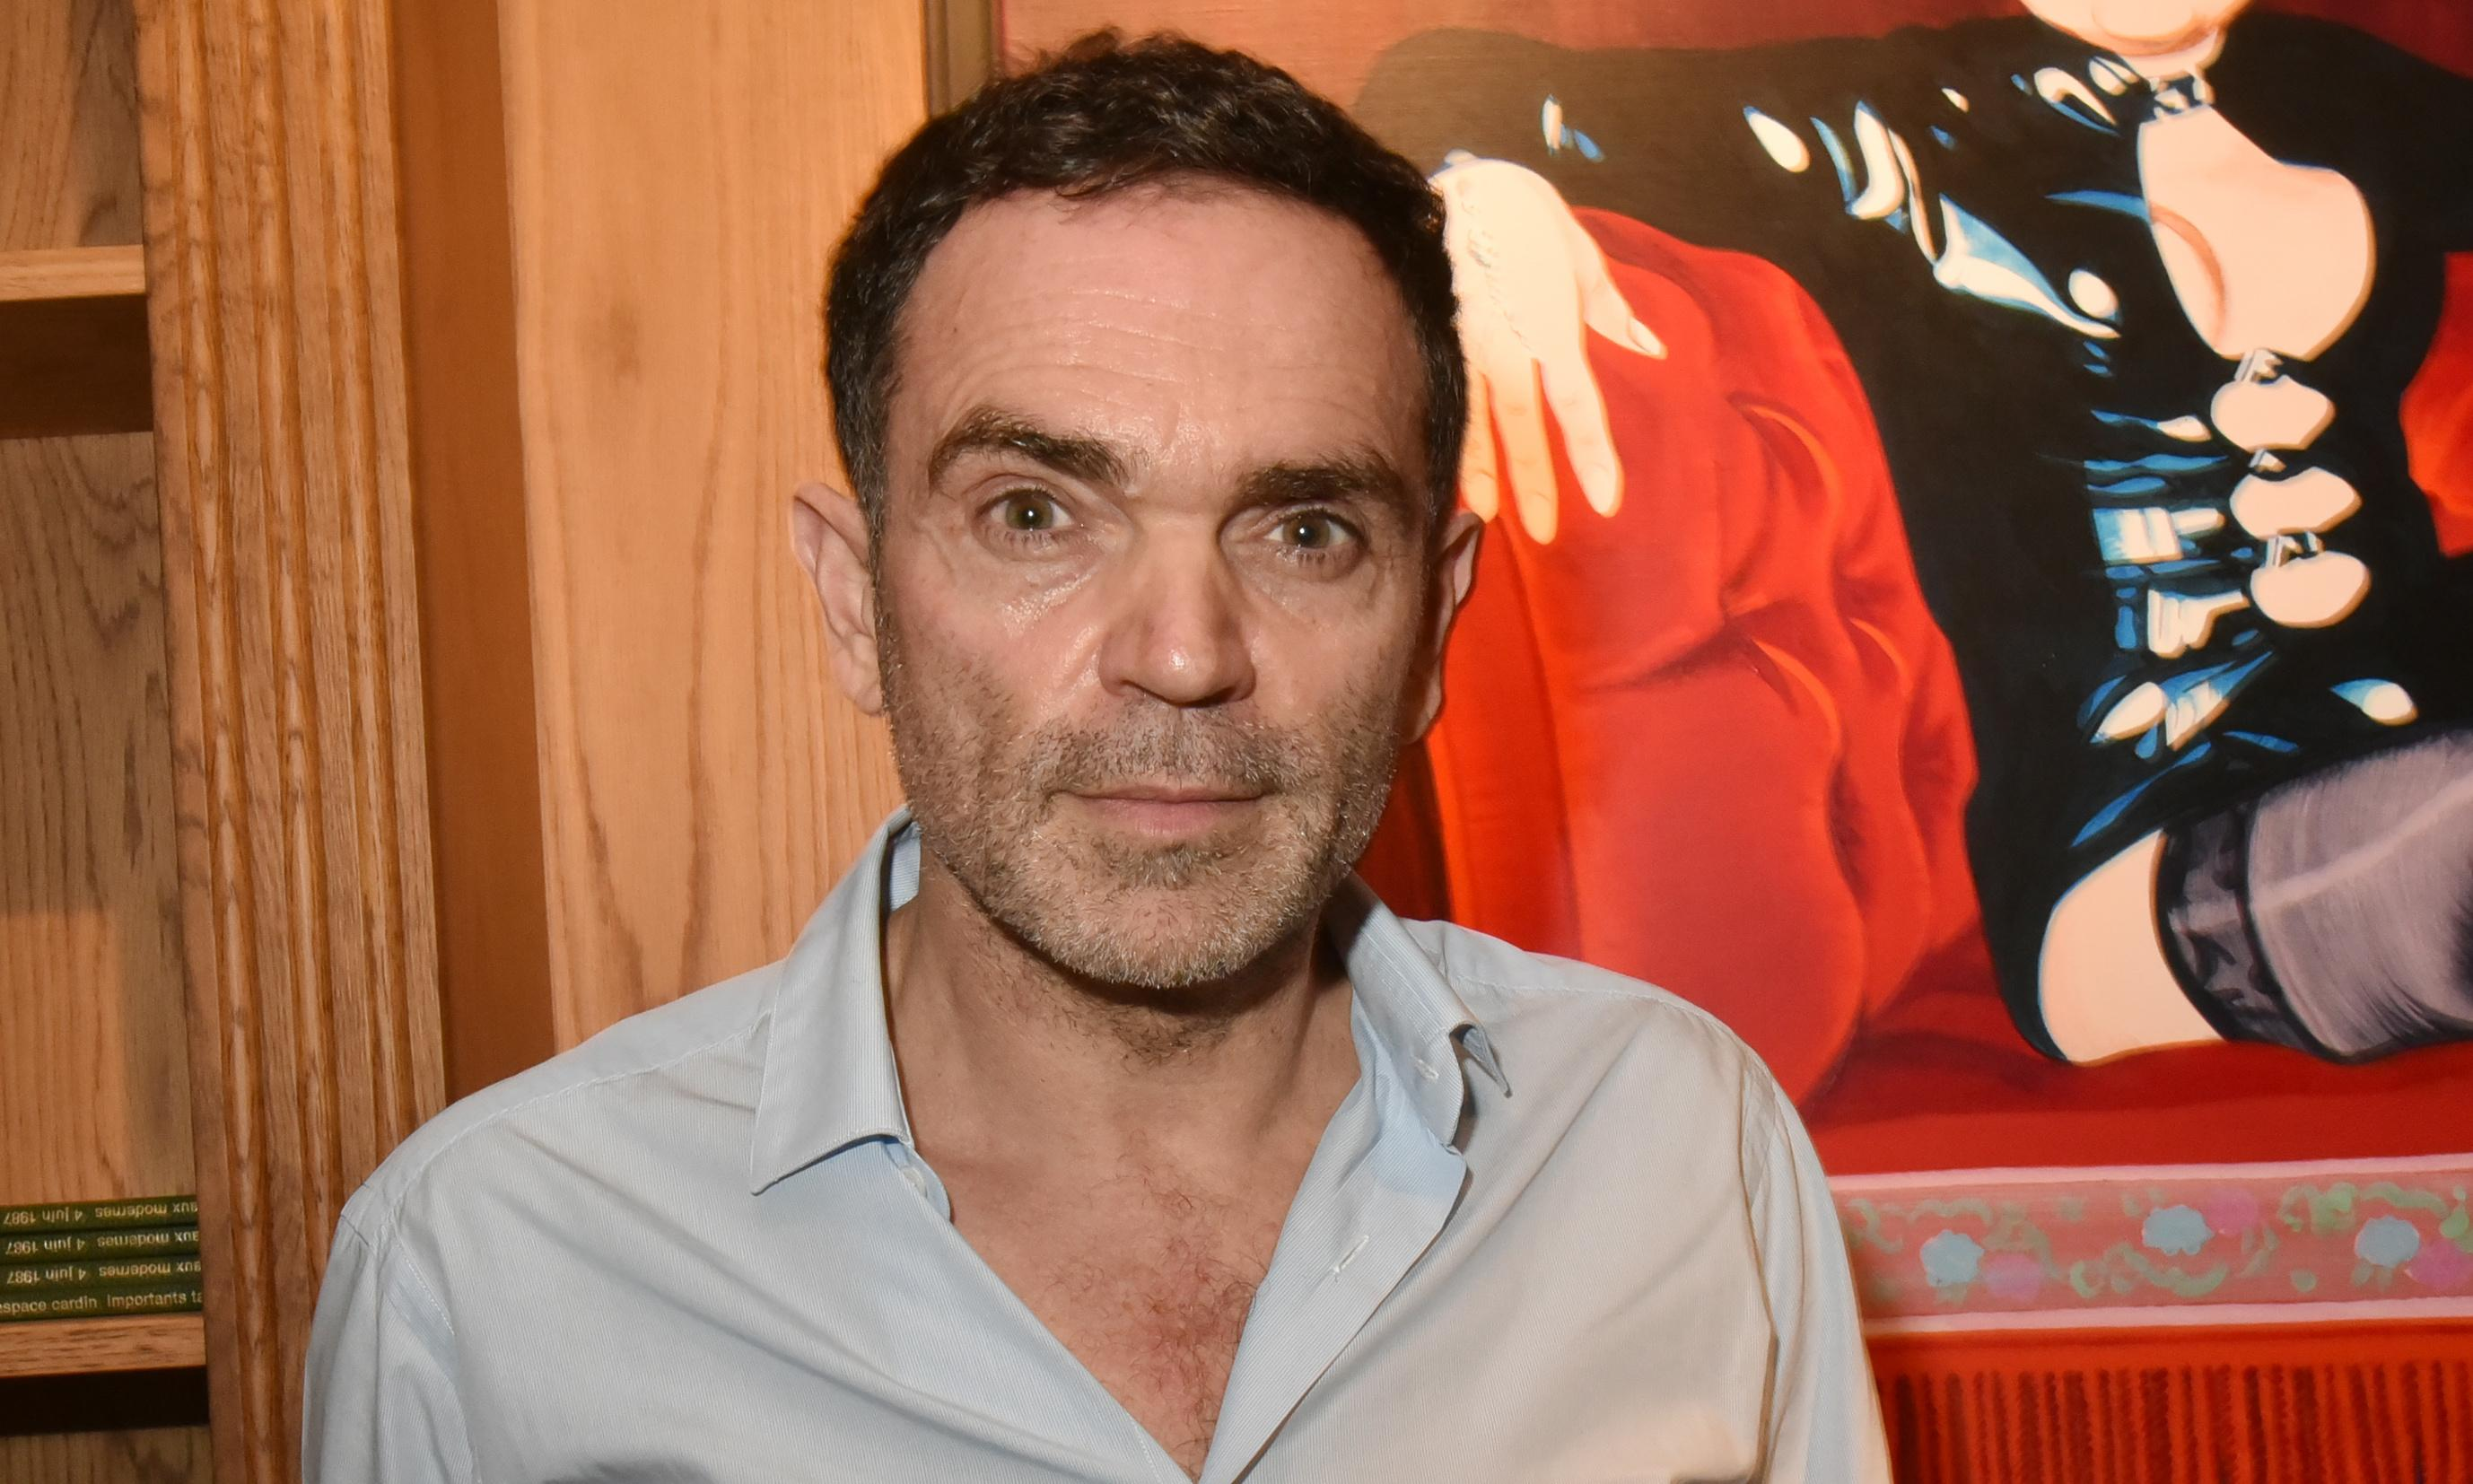 I'm not 50, but it's a relief to be invisible to men like Yann Moix